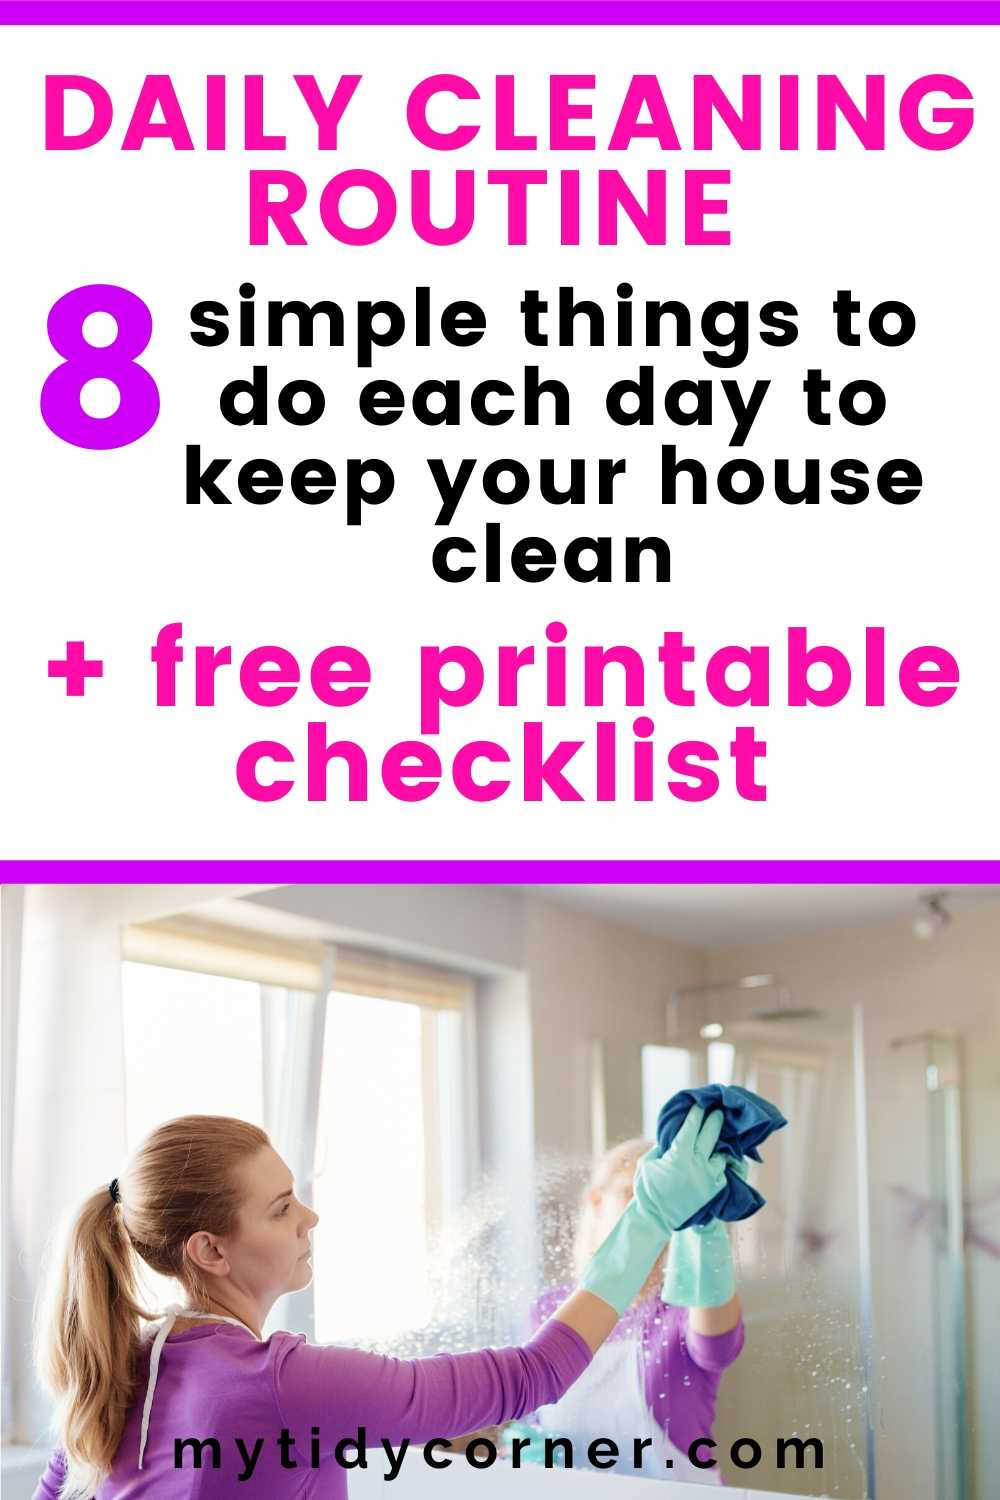 Things to do each day to keep your house clean (Daily cleaning routine)